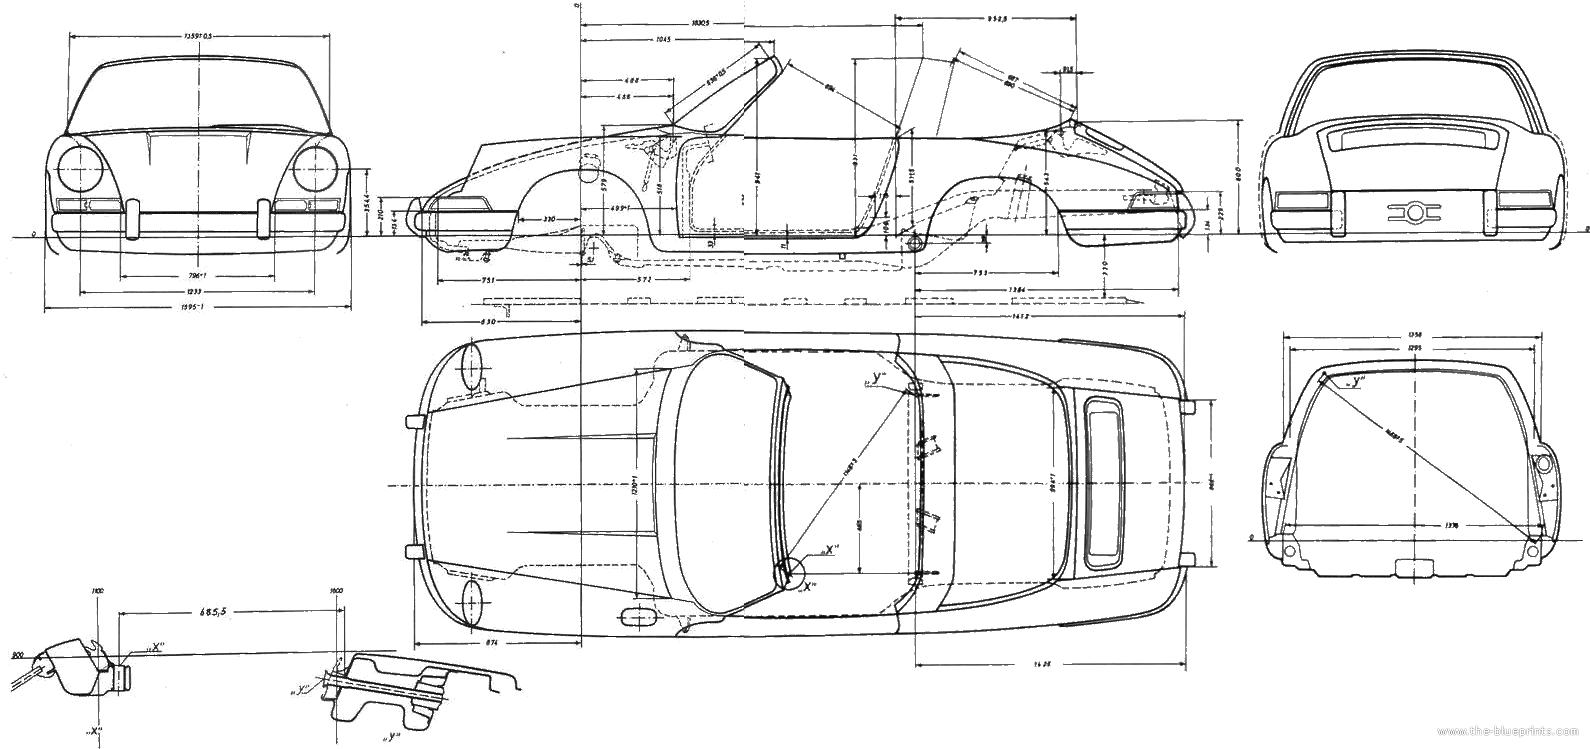 medium resolution of porsche 911 targa technical drawings race cars drag race cars architectural drawings